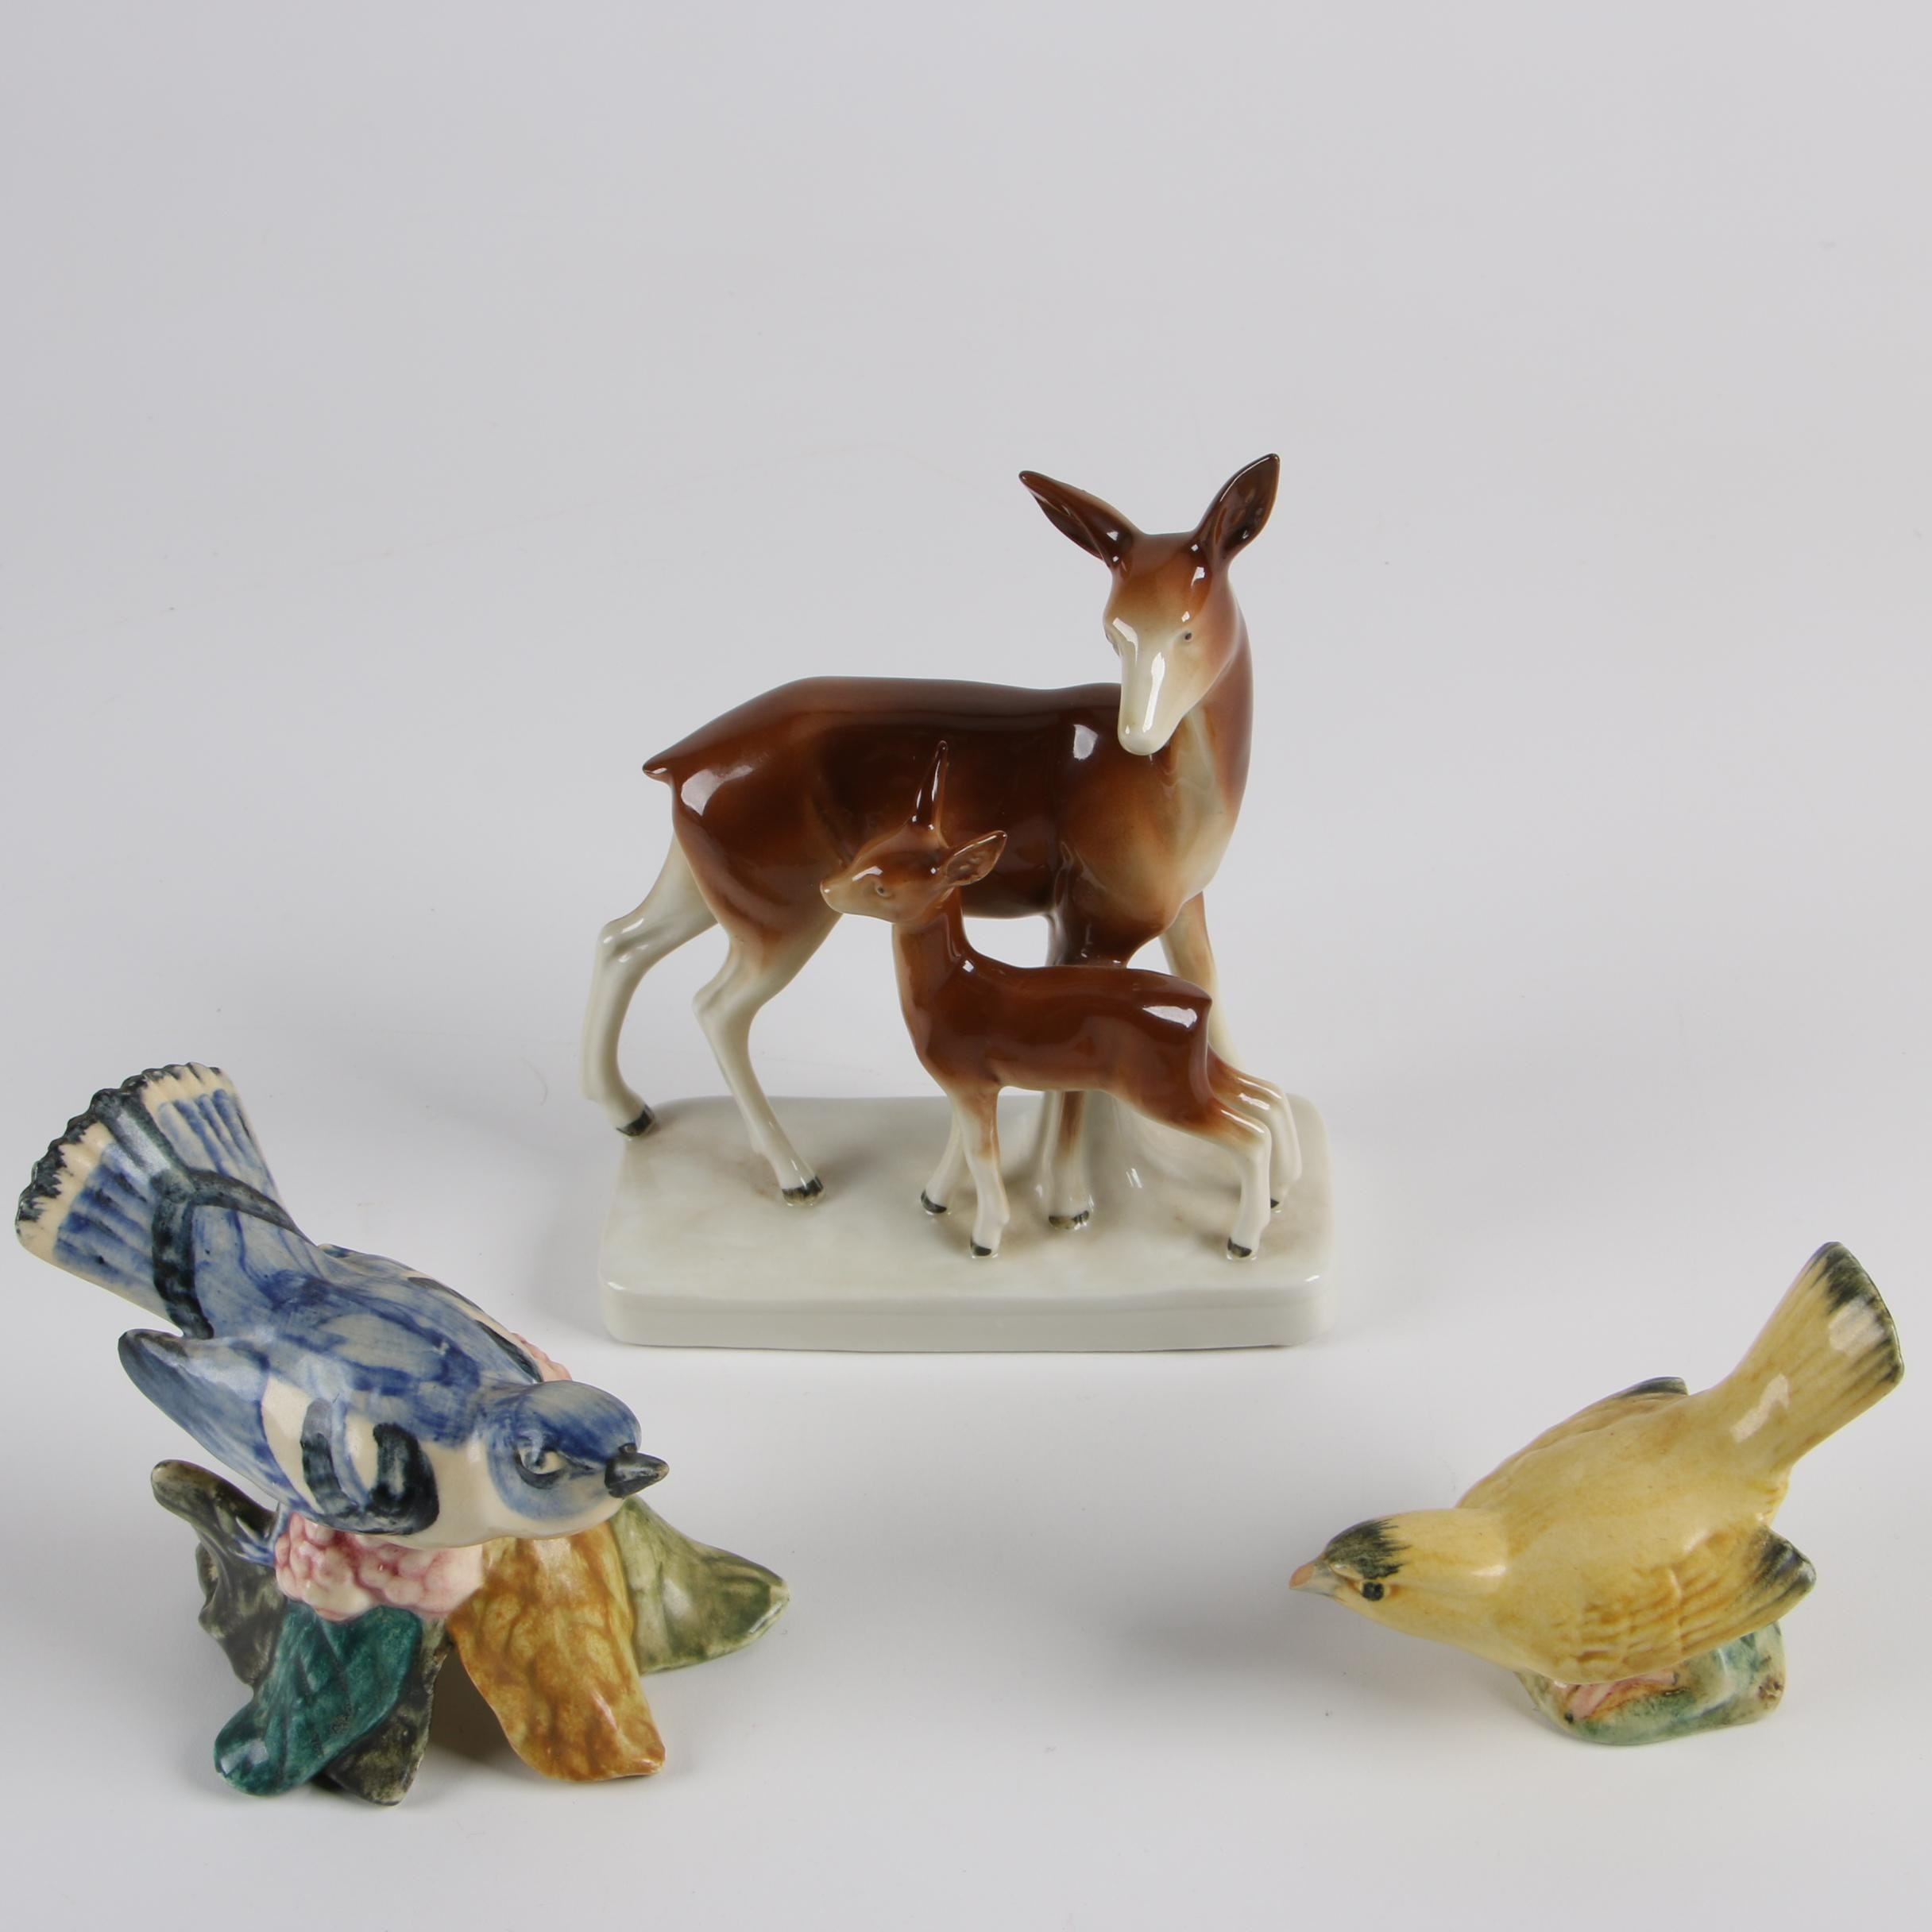 Vintage Stangl Pottery Birds and Lippelsdorf Porcelain Deer Figurines